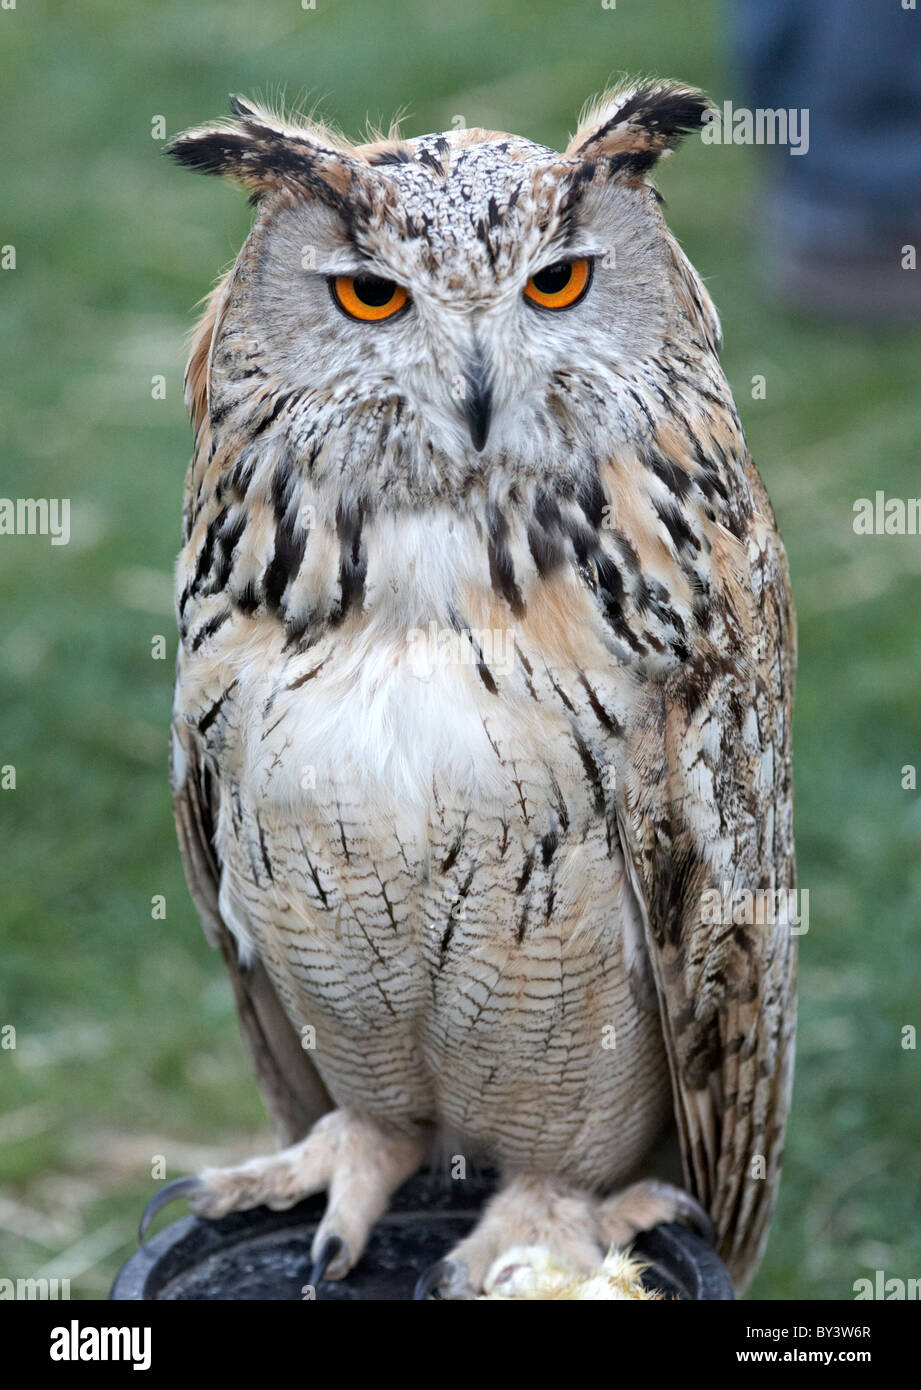 Owl At The Wickerman Festival Butser Farm Sussex UK - Stock Image